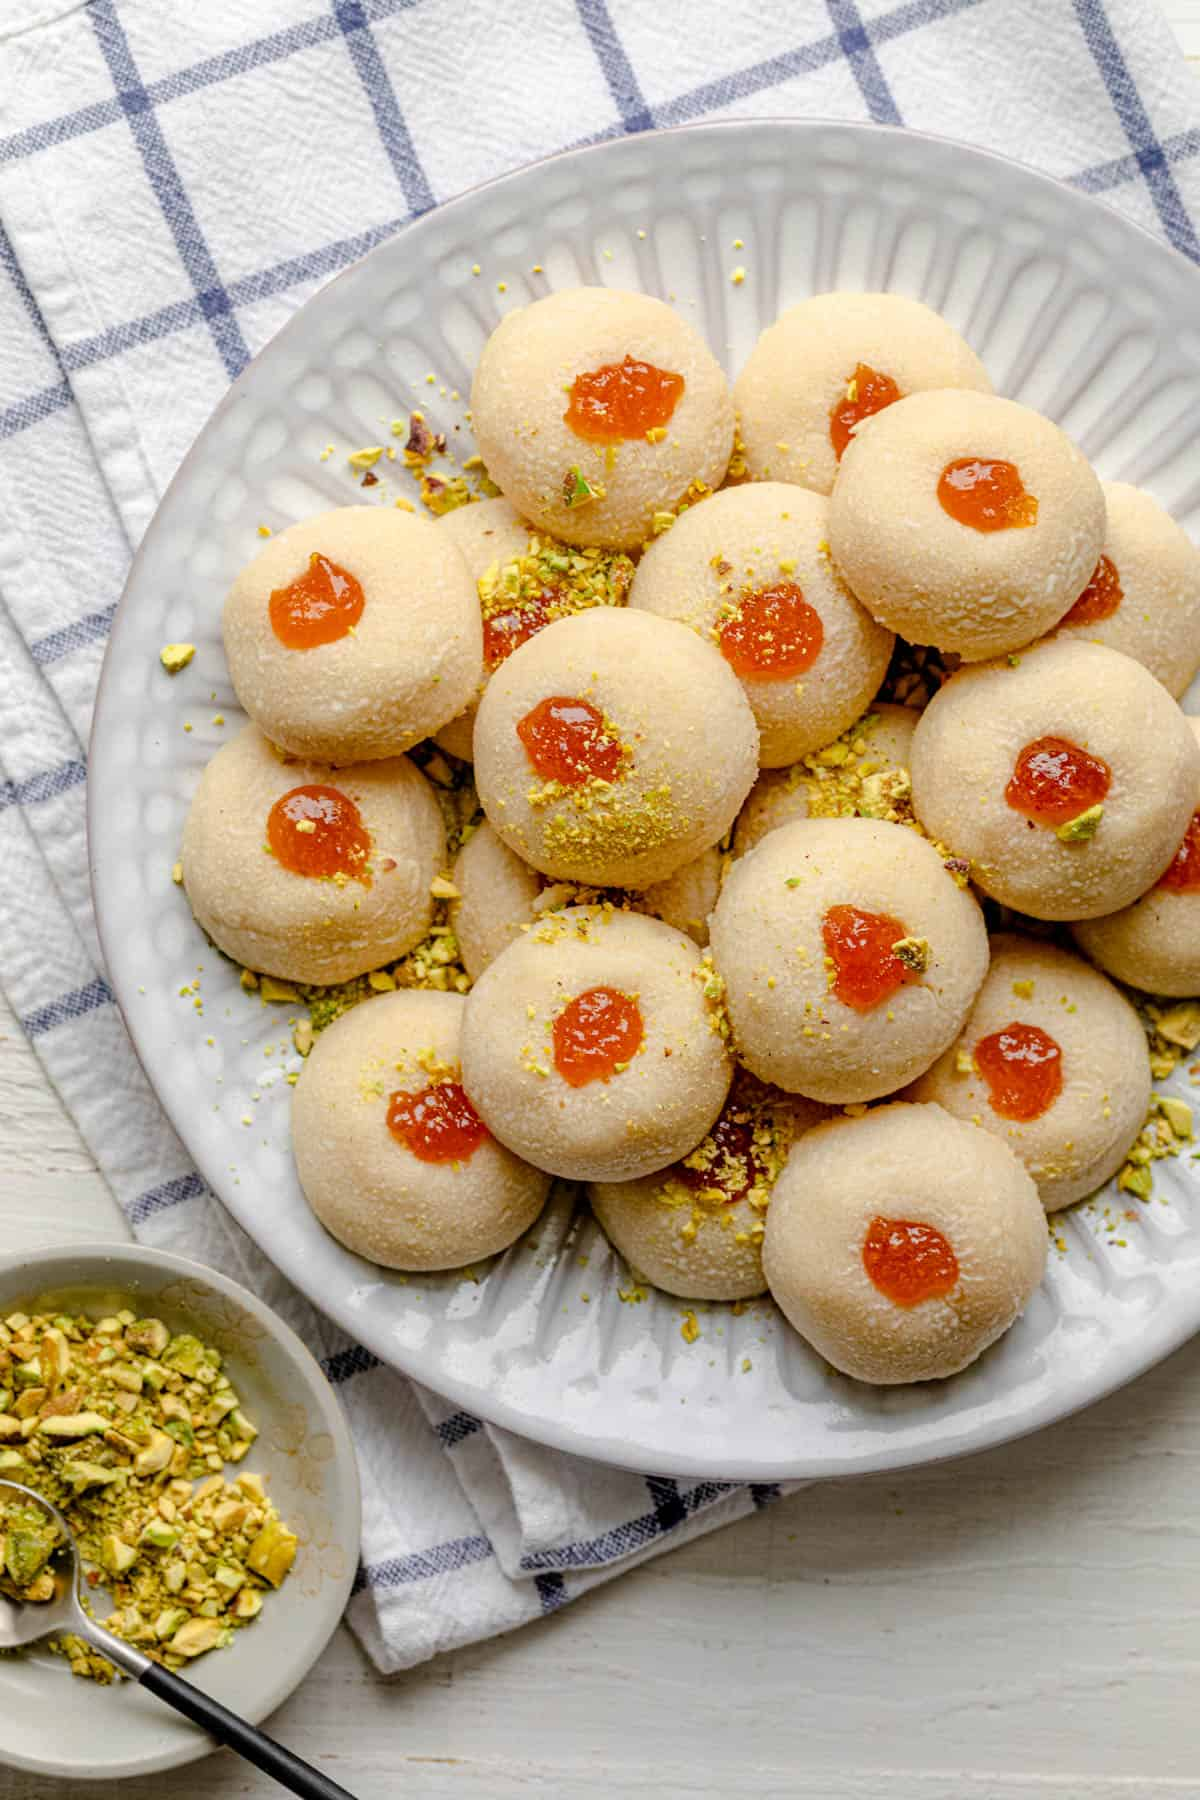 Large plate for ghraybeh shortbread cookies with pistachios on the side